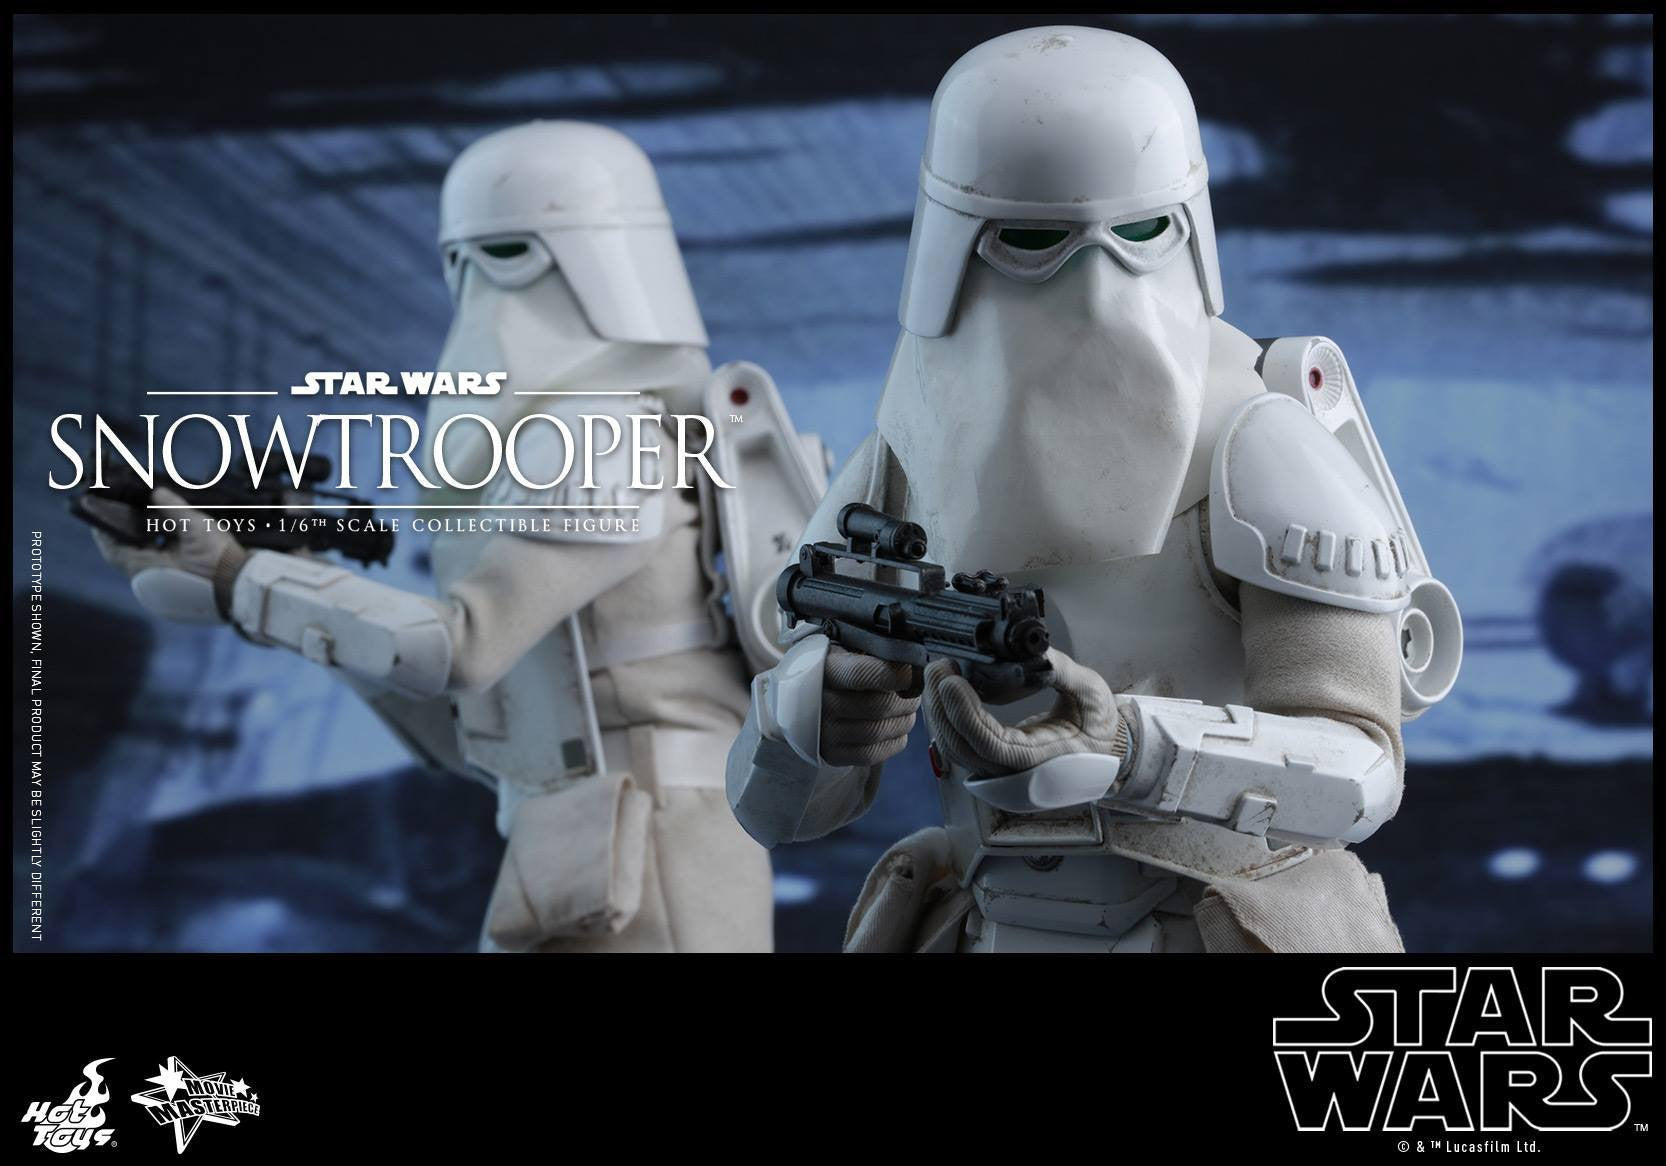 Hot Toys - MMS397 - Star Wars Episode V: The Empire Strikes Back - Snowtrooper - Marvelous Toys - 10